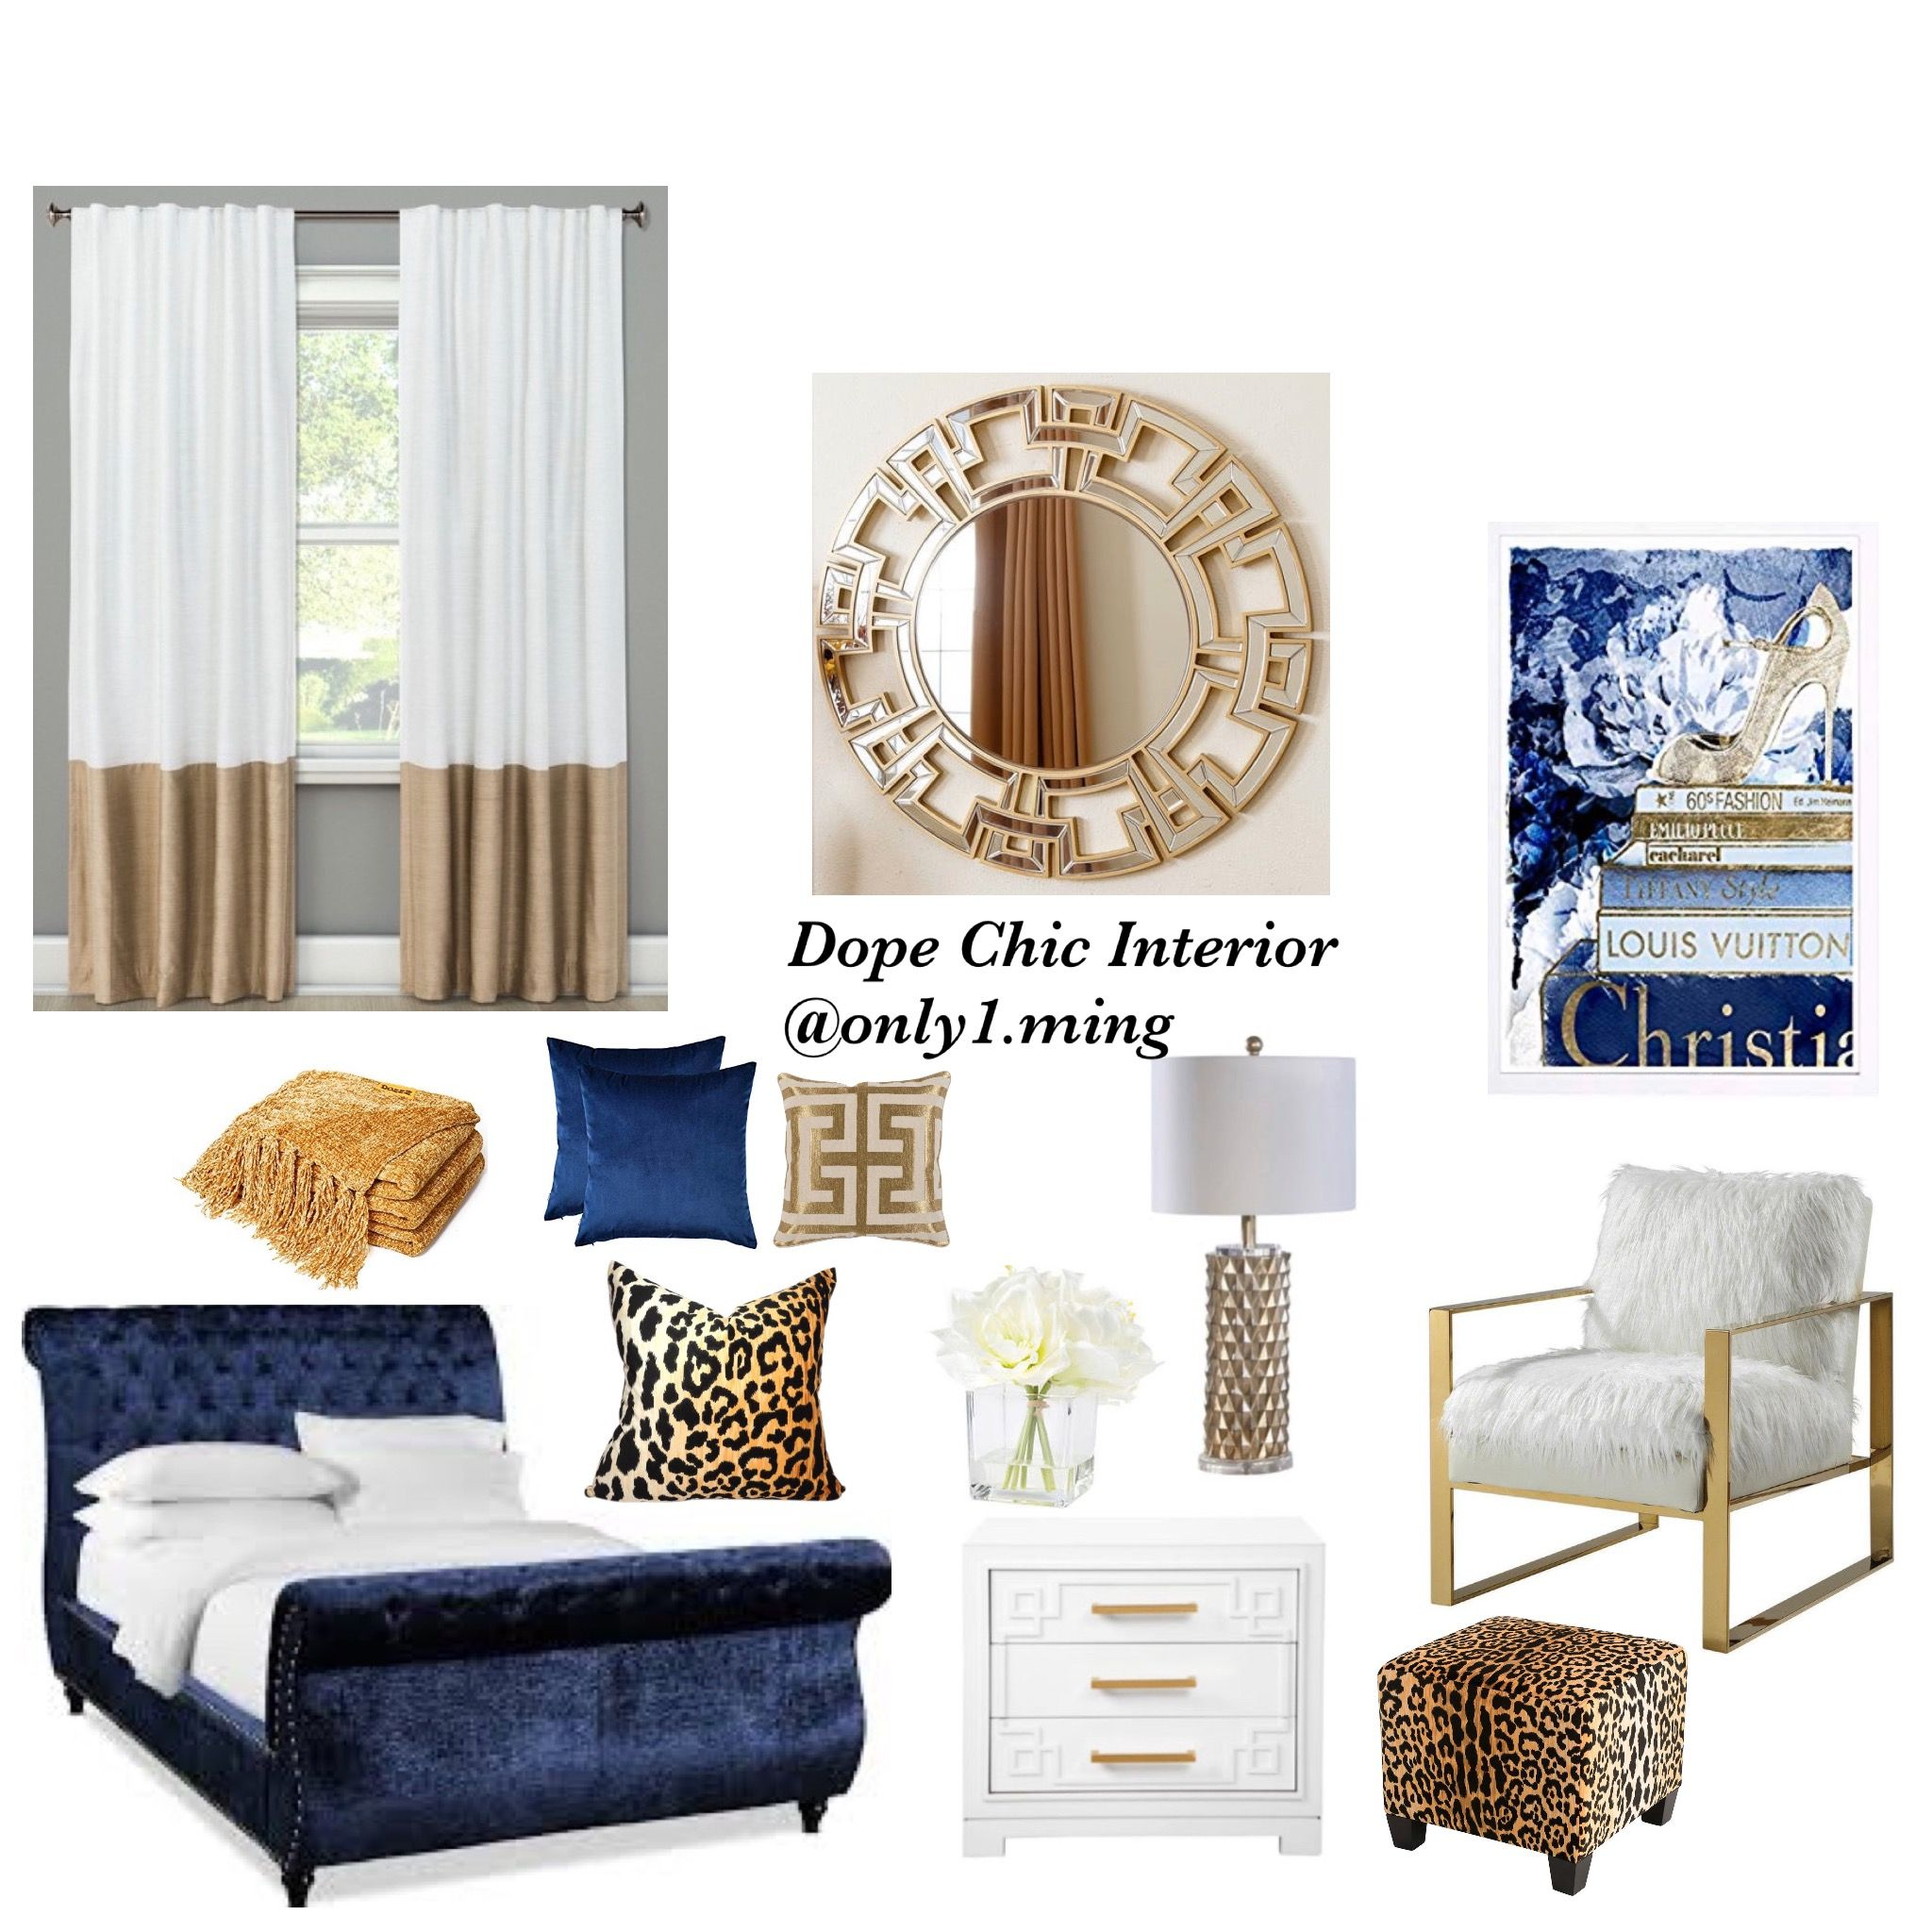 Royal Blue White And Gold Bedroom In 2020 Blue Bedroom Decor